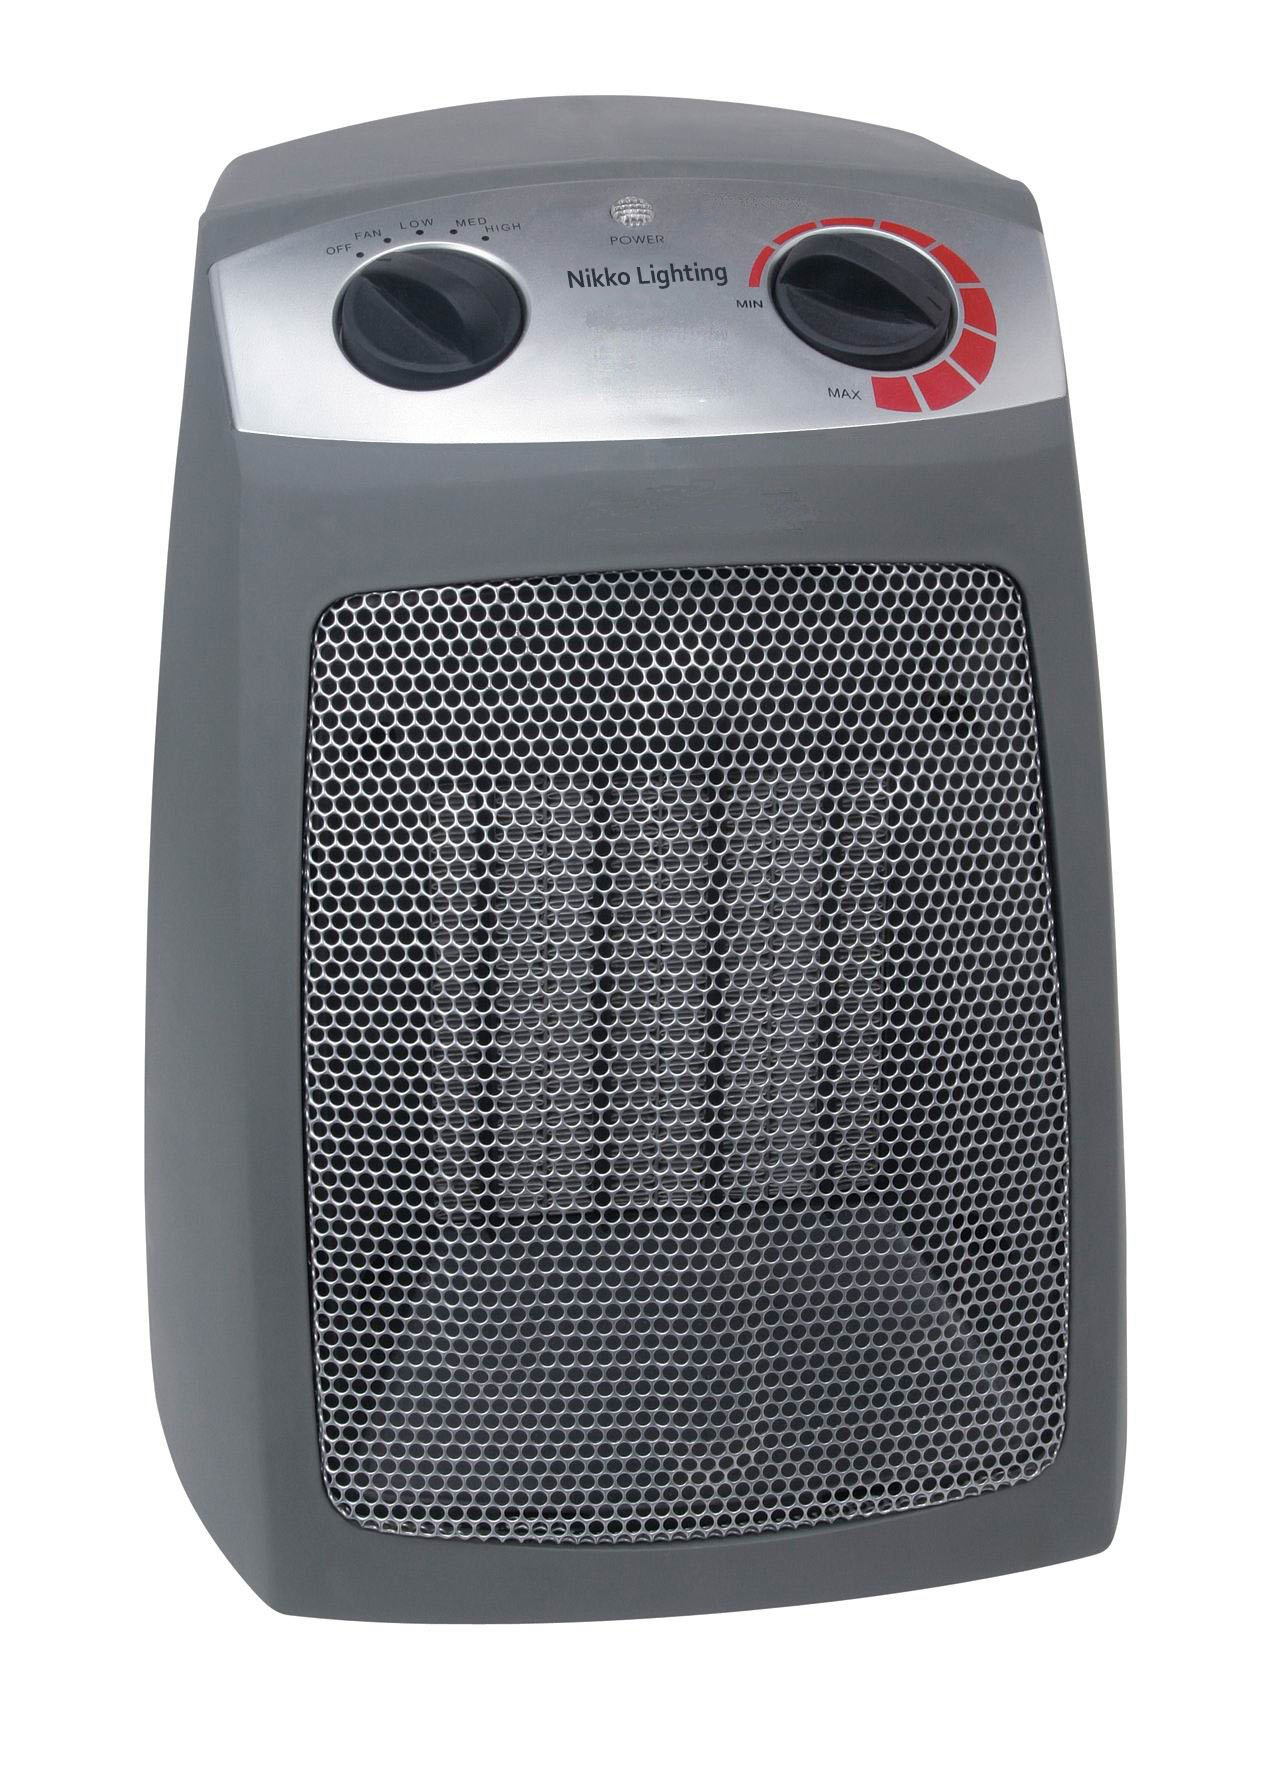 Nikko Heater (UL LISTED) - 5200 BTU - Auto Temp Control - Over Heat Protection - Tip Over Protection - Dust Filter - Rear Cool to Touch by Nikko Lighting